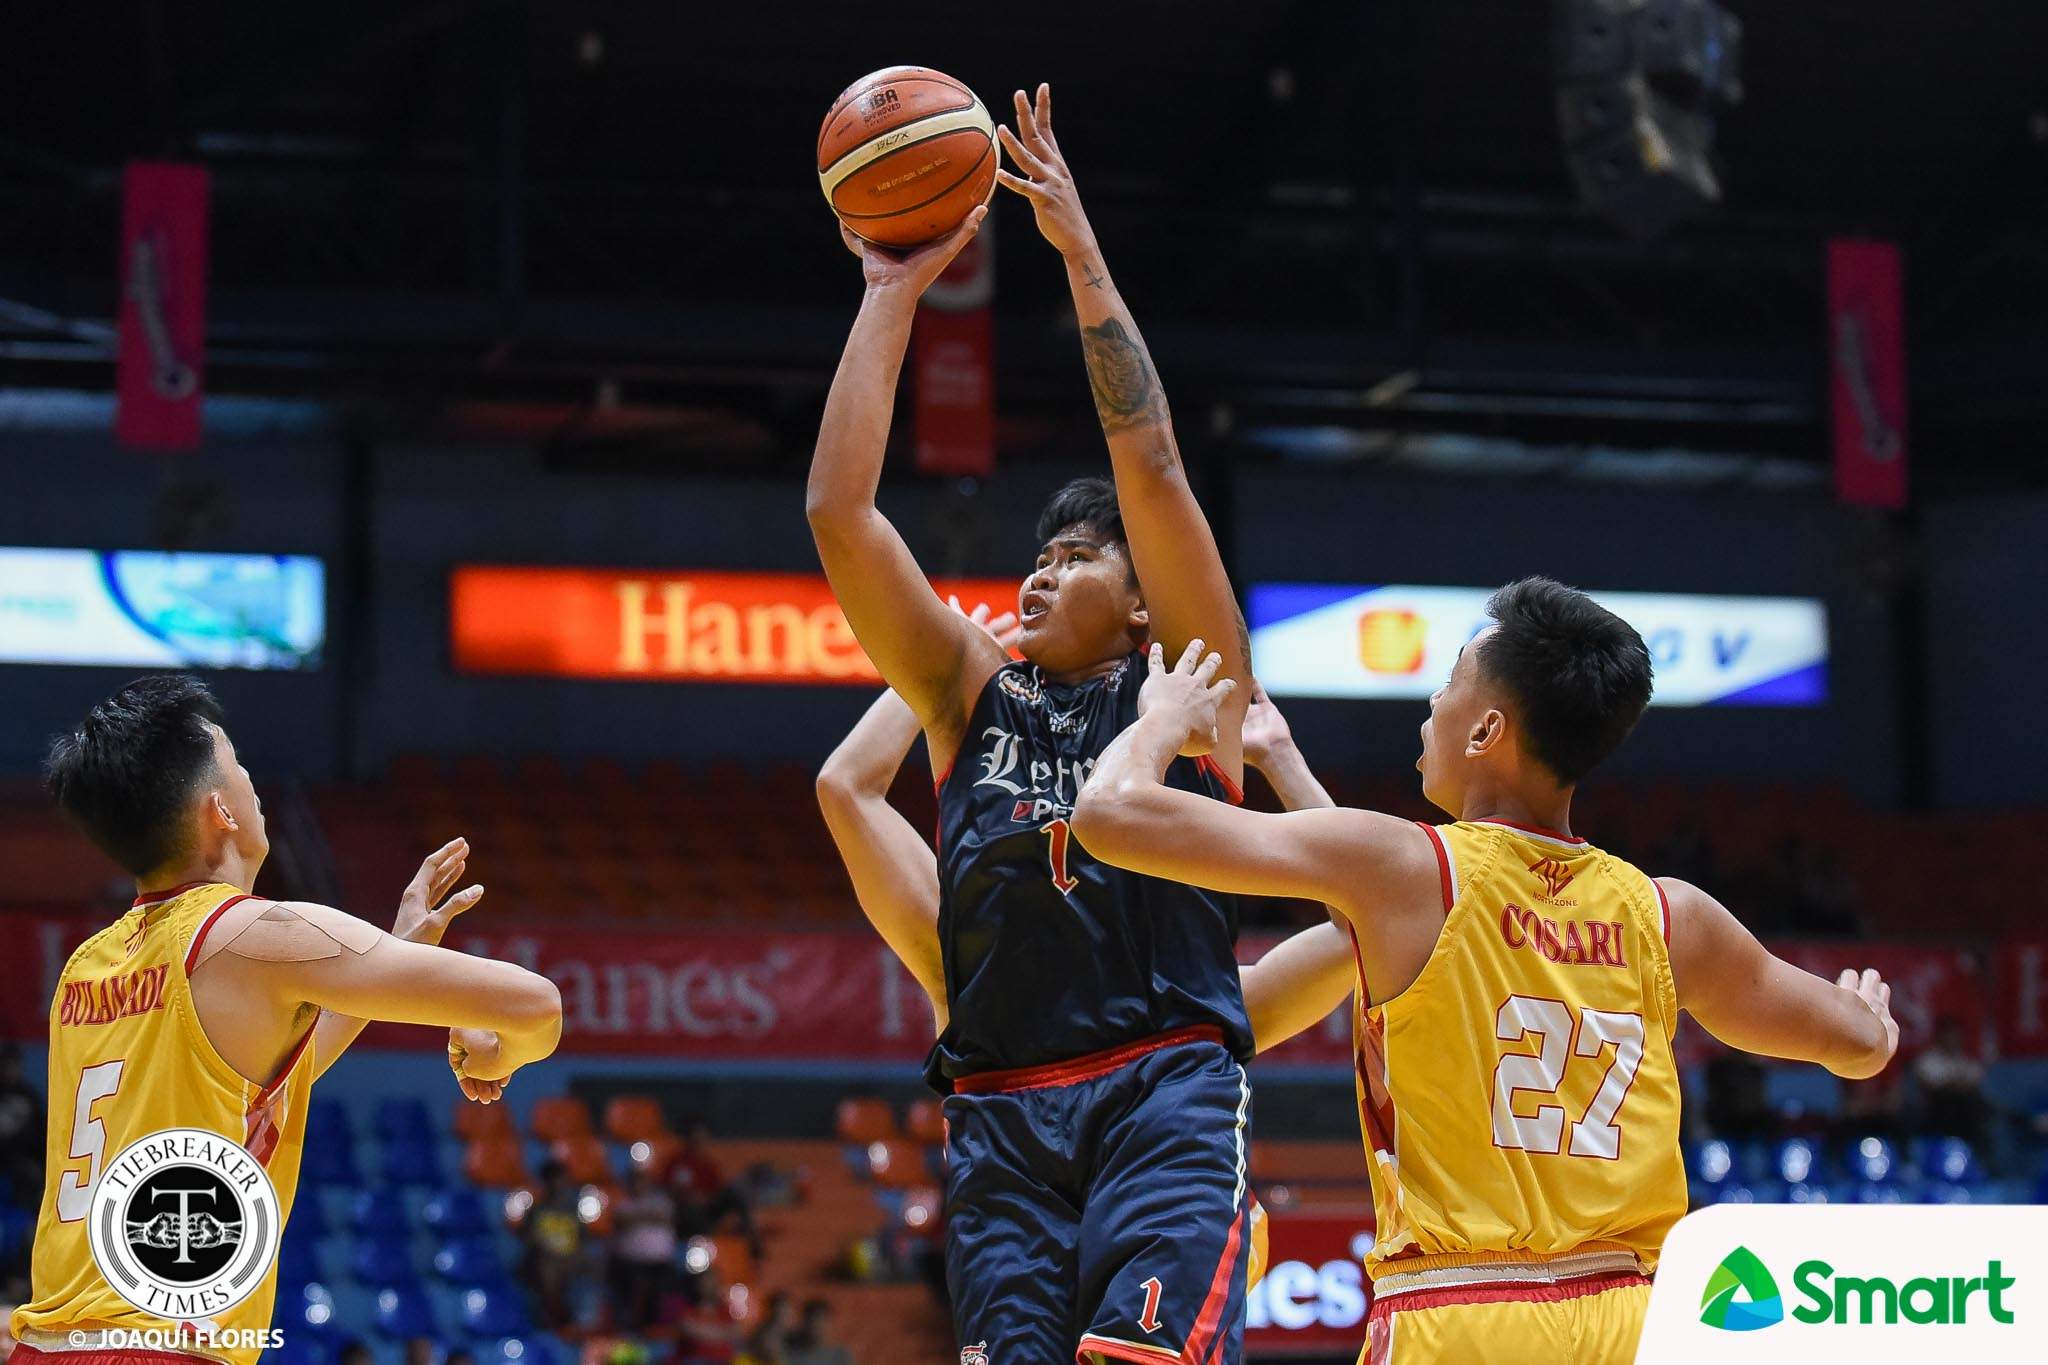 Tiebreaker Times Larry Muyang makes sure to bounce back: 'Kaso minalas' Basketball CSJL NCAA News  NCAA Season 95 Seniors Basketball NCAA Season 95 Letran Seniors Basketball Larry Muyang